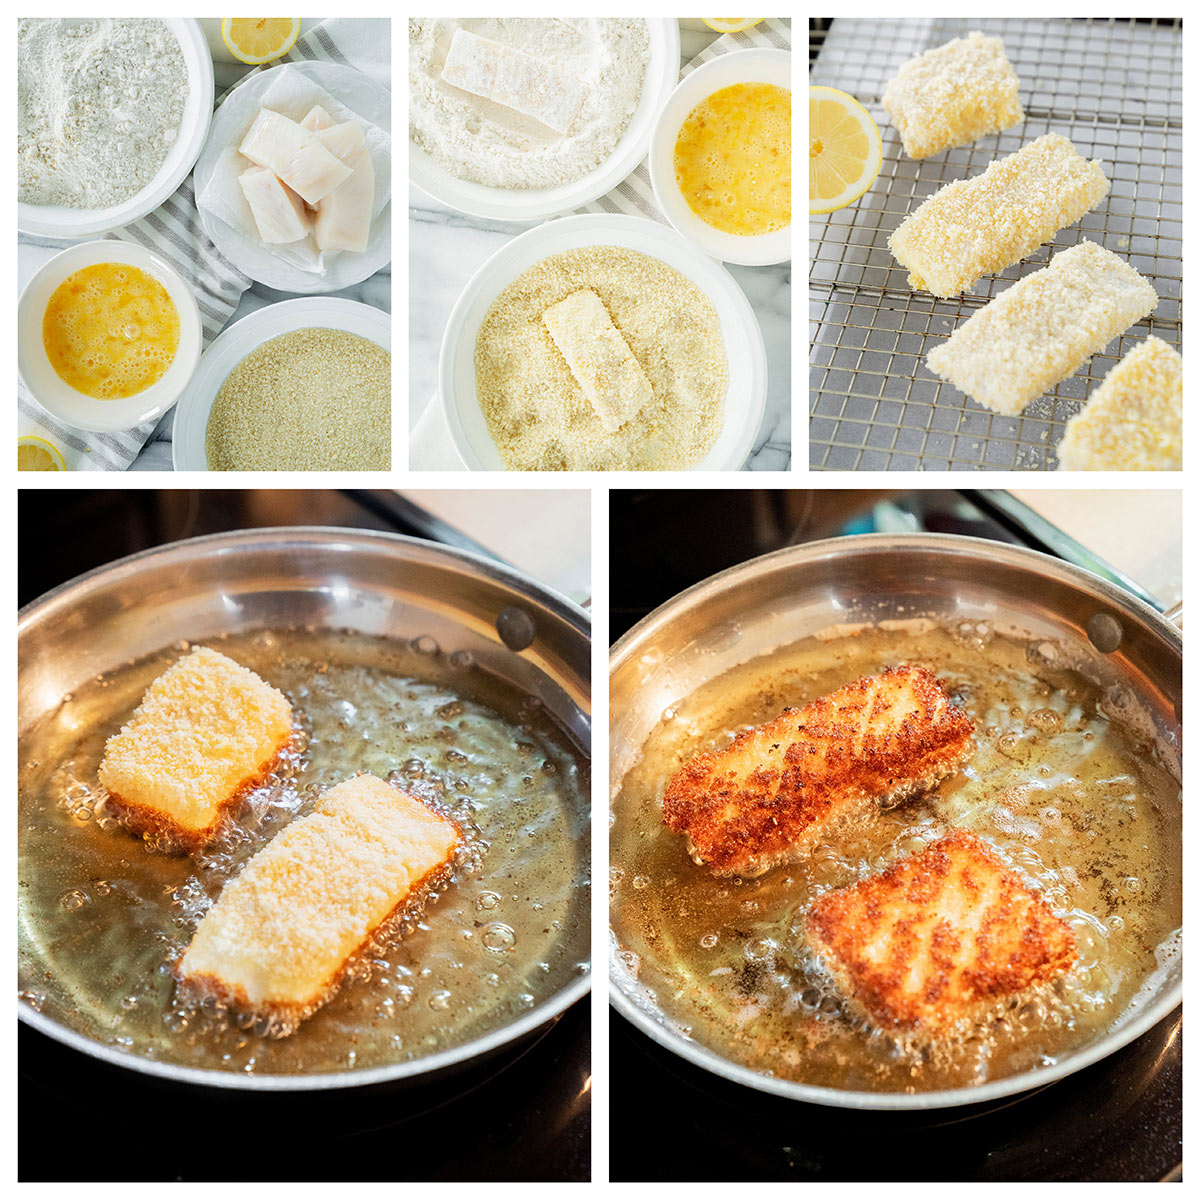 dredging halibut fillets in flour, eggs and panko breadcrumbs and frying in a skillet of oil